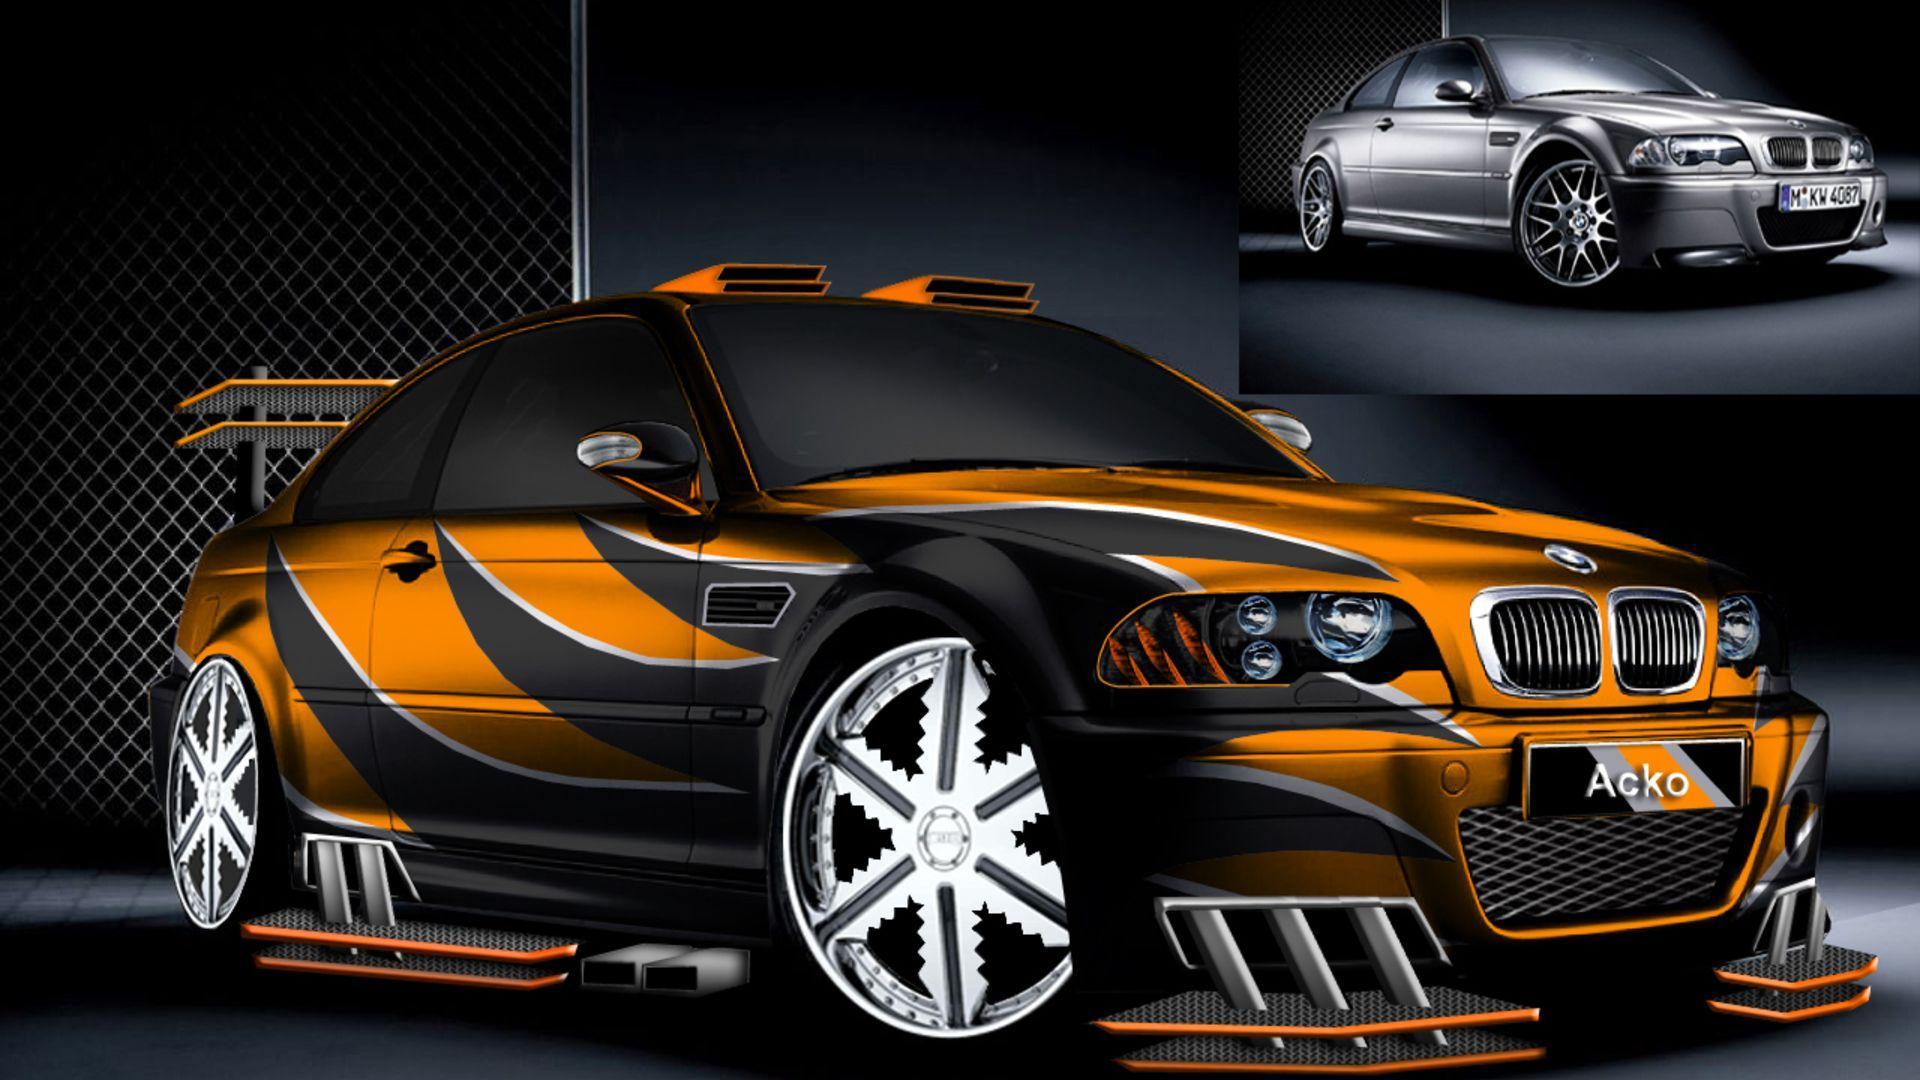 Pack De Wallpaper De Carros Full Hd: Modified Car Wallpapers